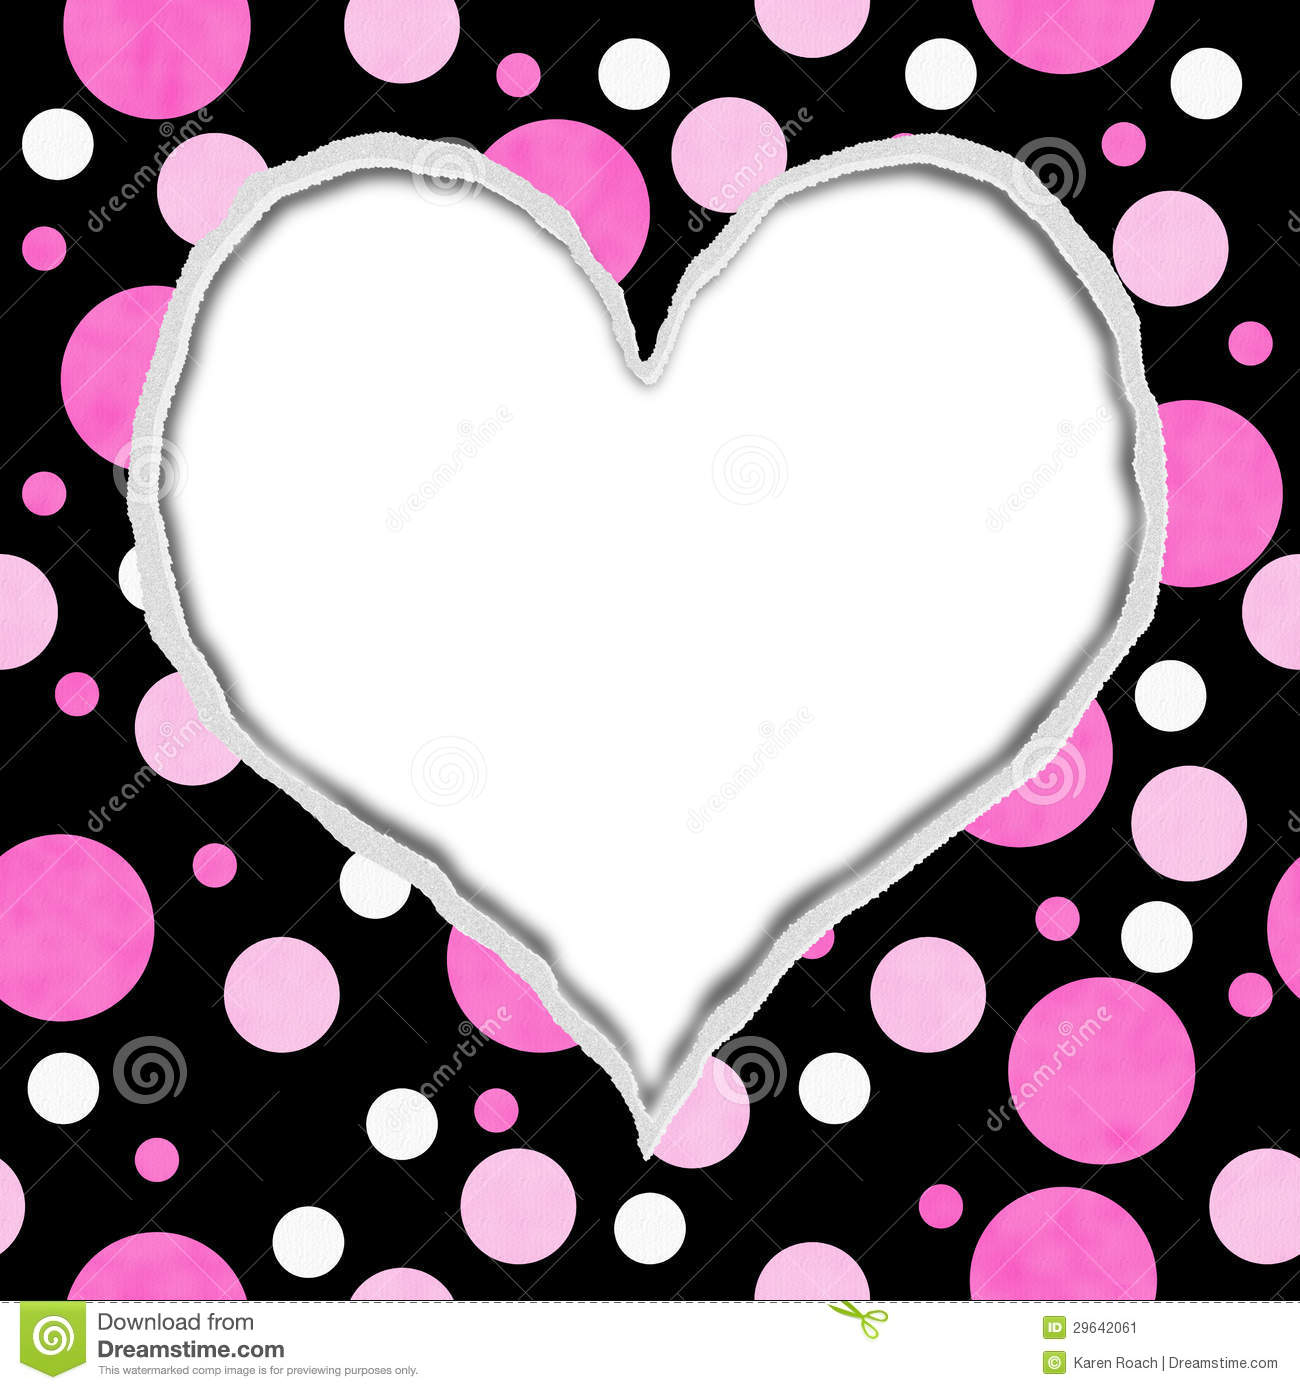 Free Download Pink Heart And Fabric Black 1300x1390 For Your